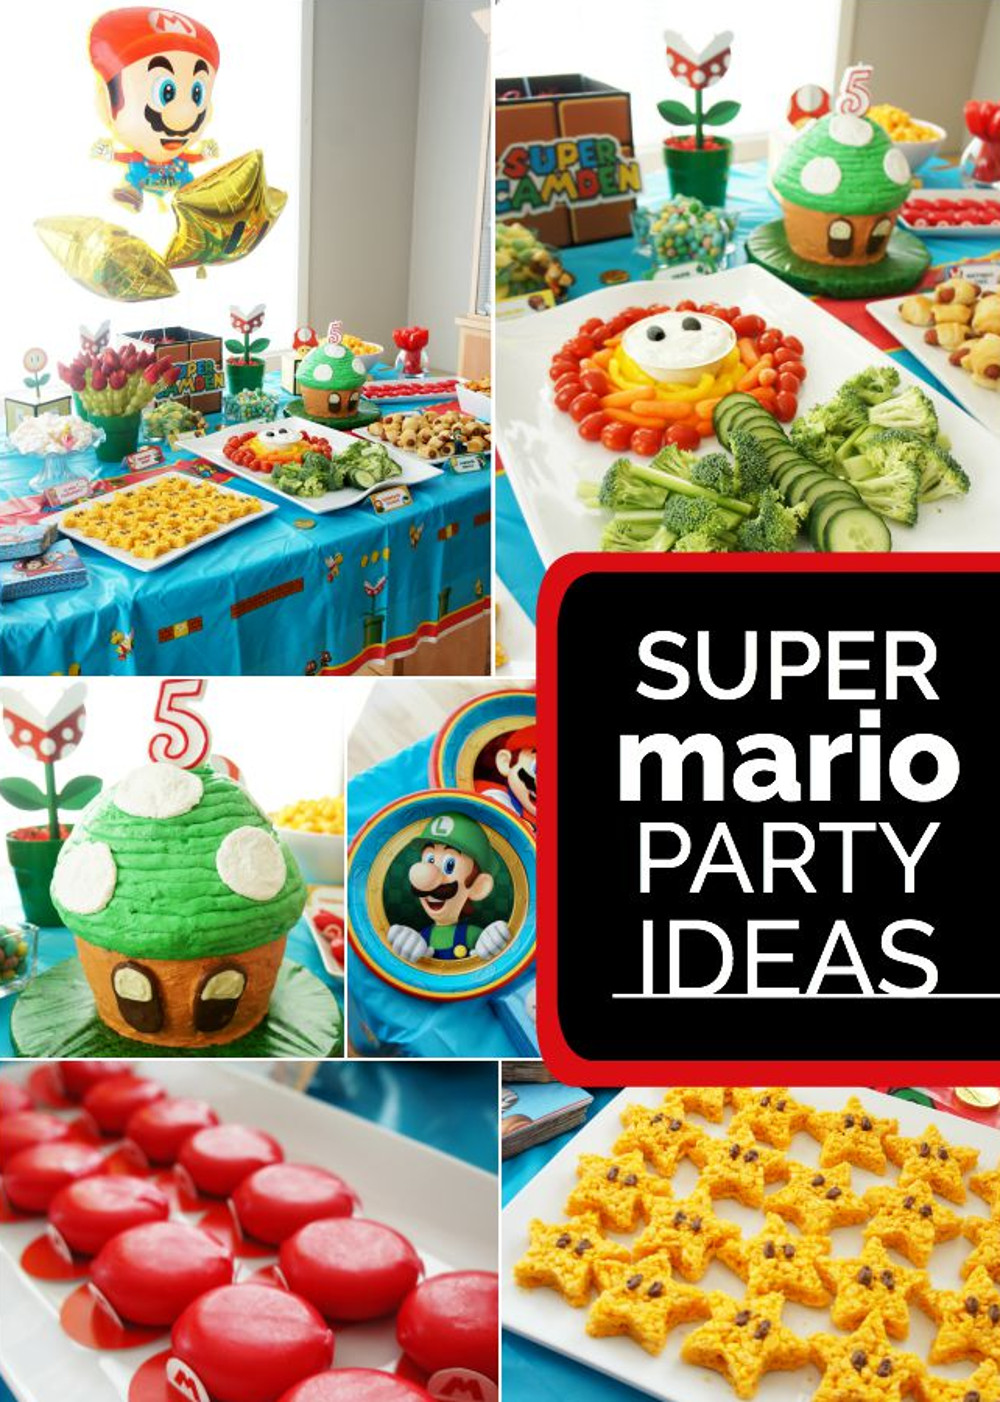 Video Game theme party ideas and decorators